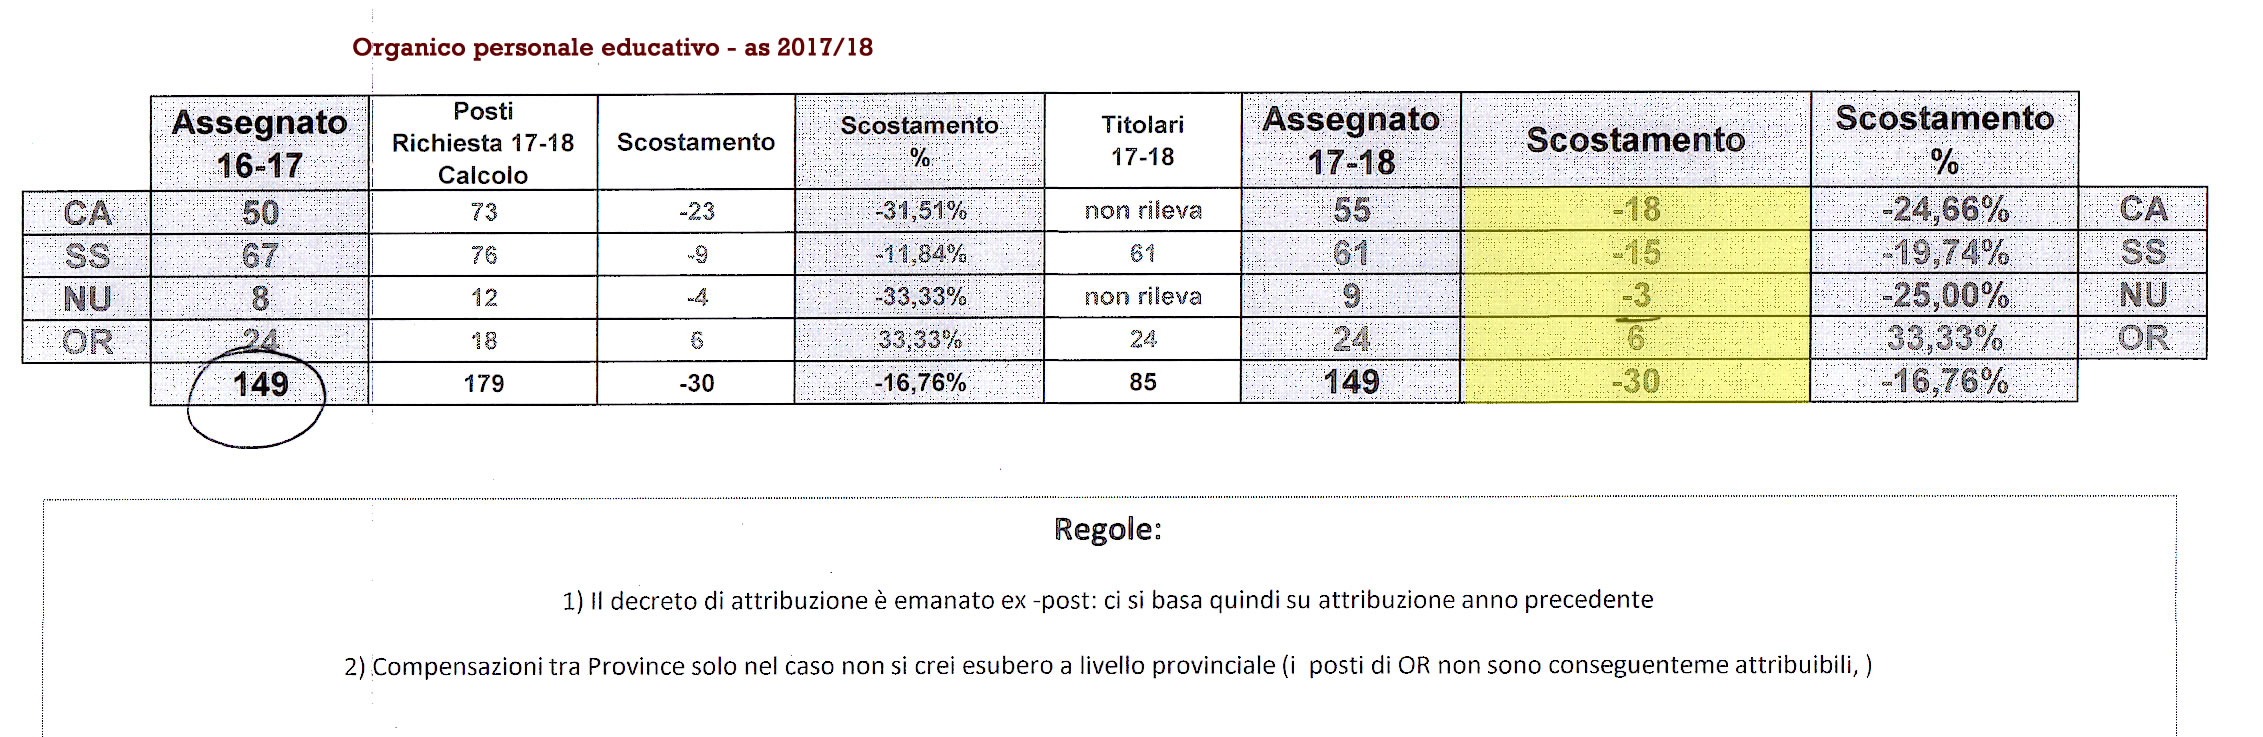 Distribuzione personale educativo